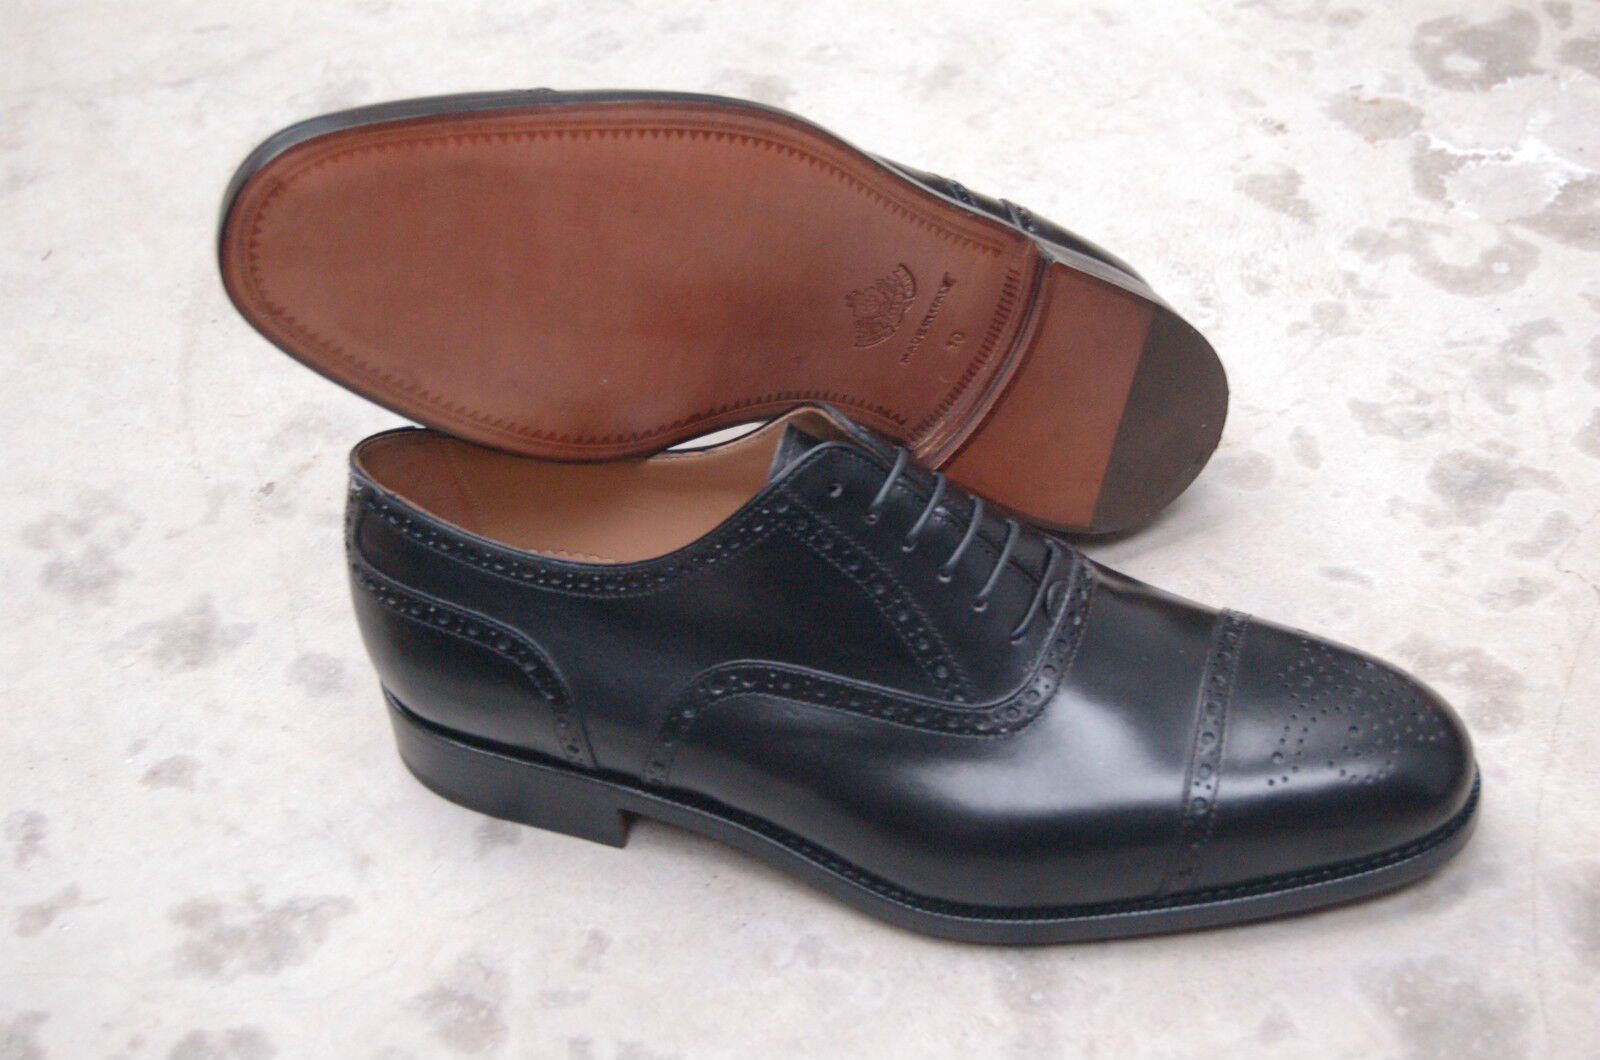 MAN - OXFORD WINGTIP - BLACK CALF PERFS AND MEDALLION - LEATHER SOLE - BLAKE